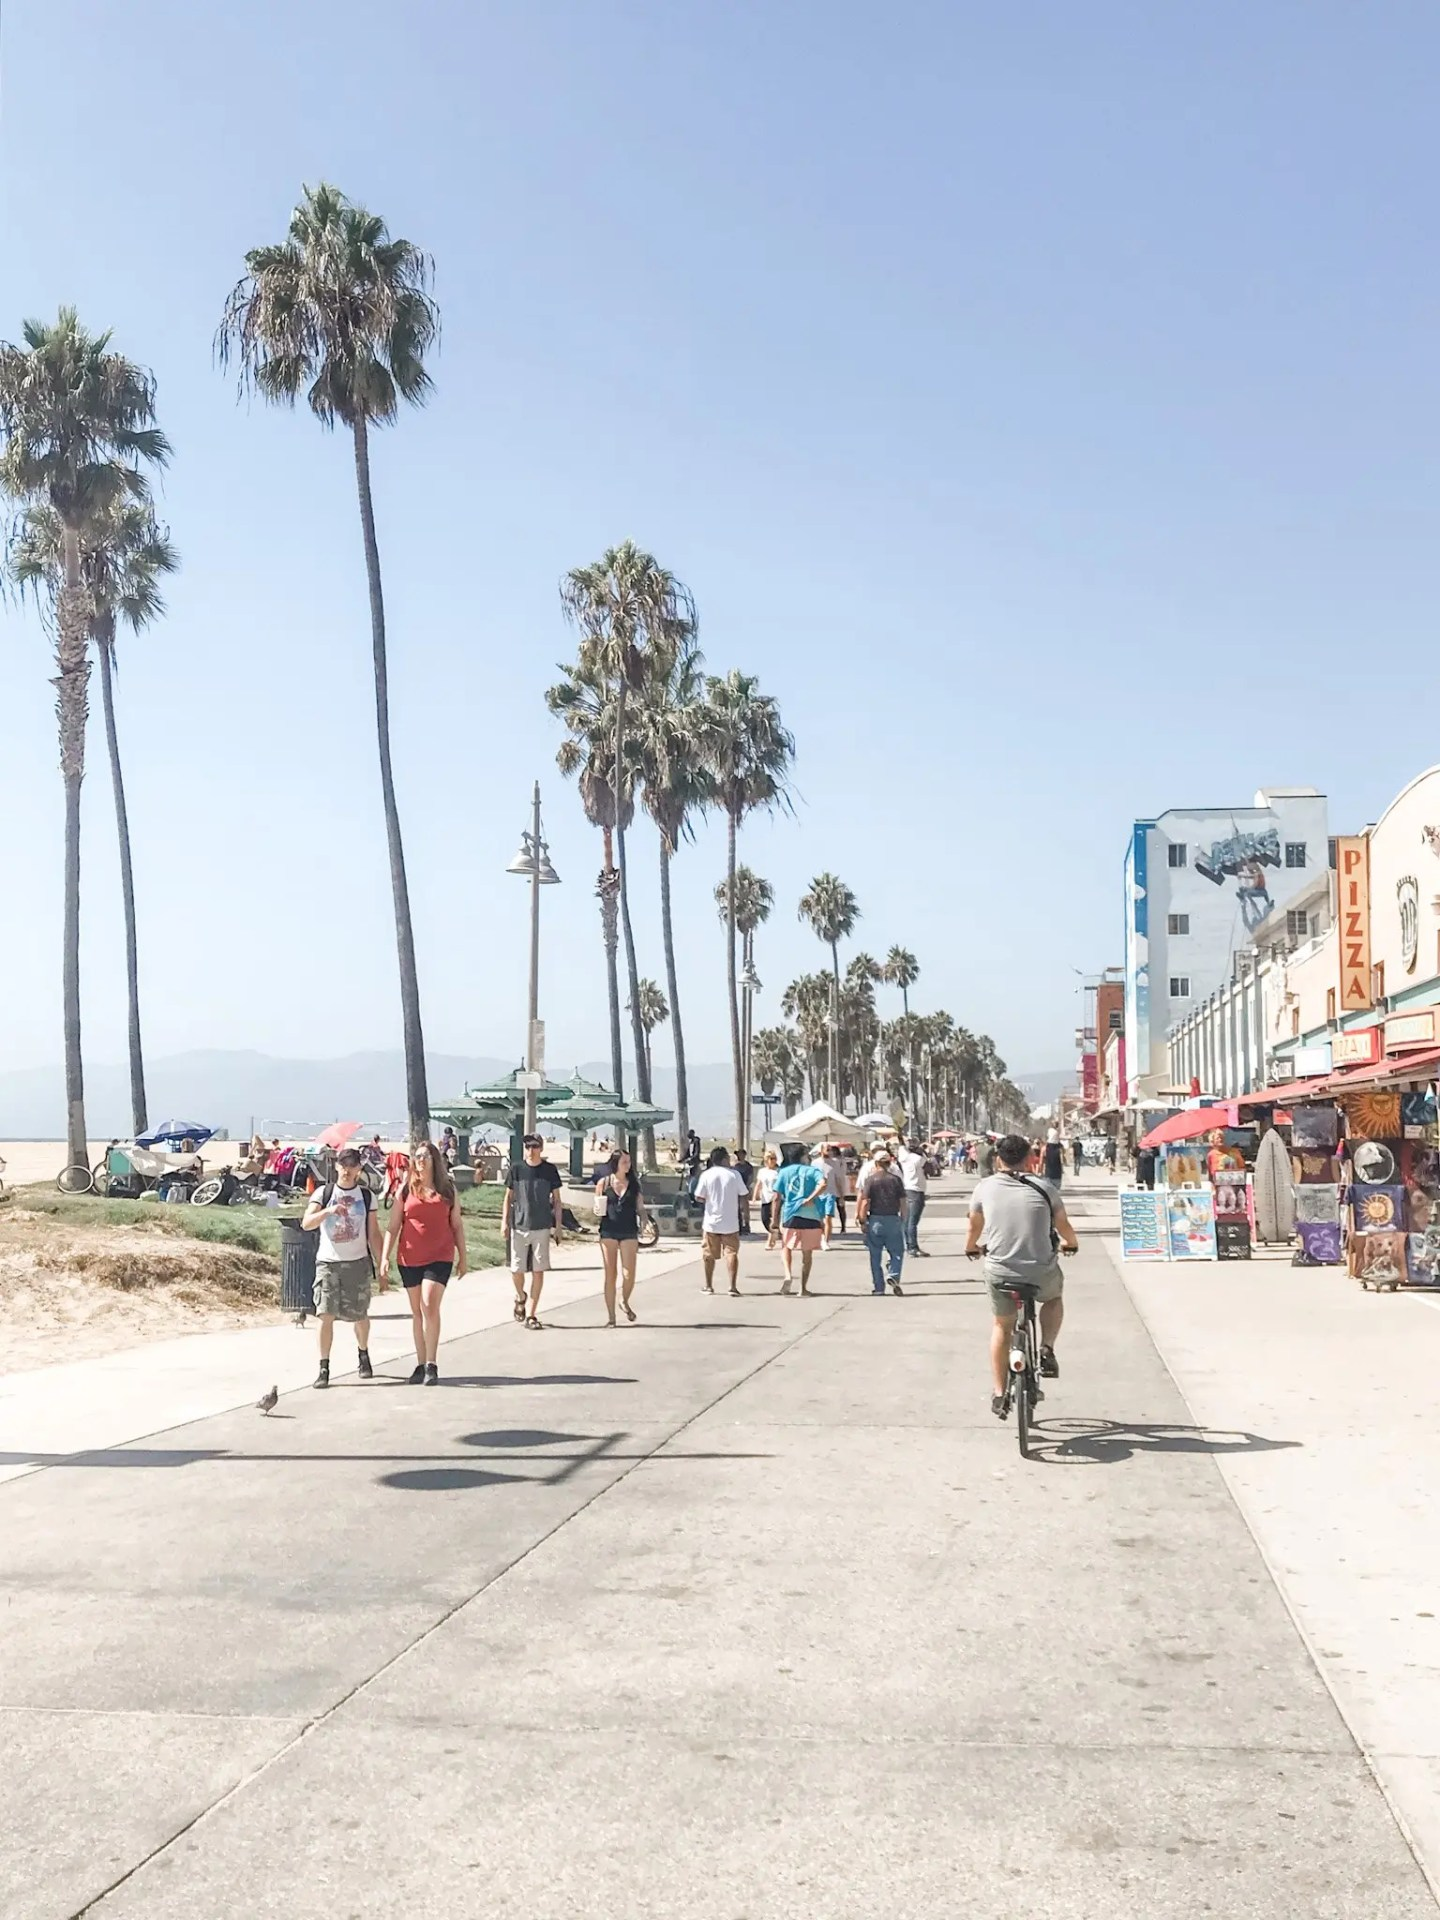 No road trip through LA is complete without a visit to the Venice Beach Boardwalk!